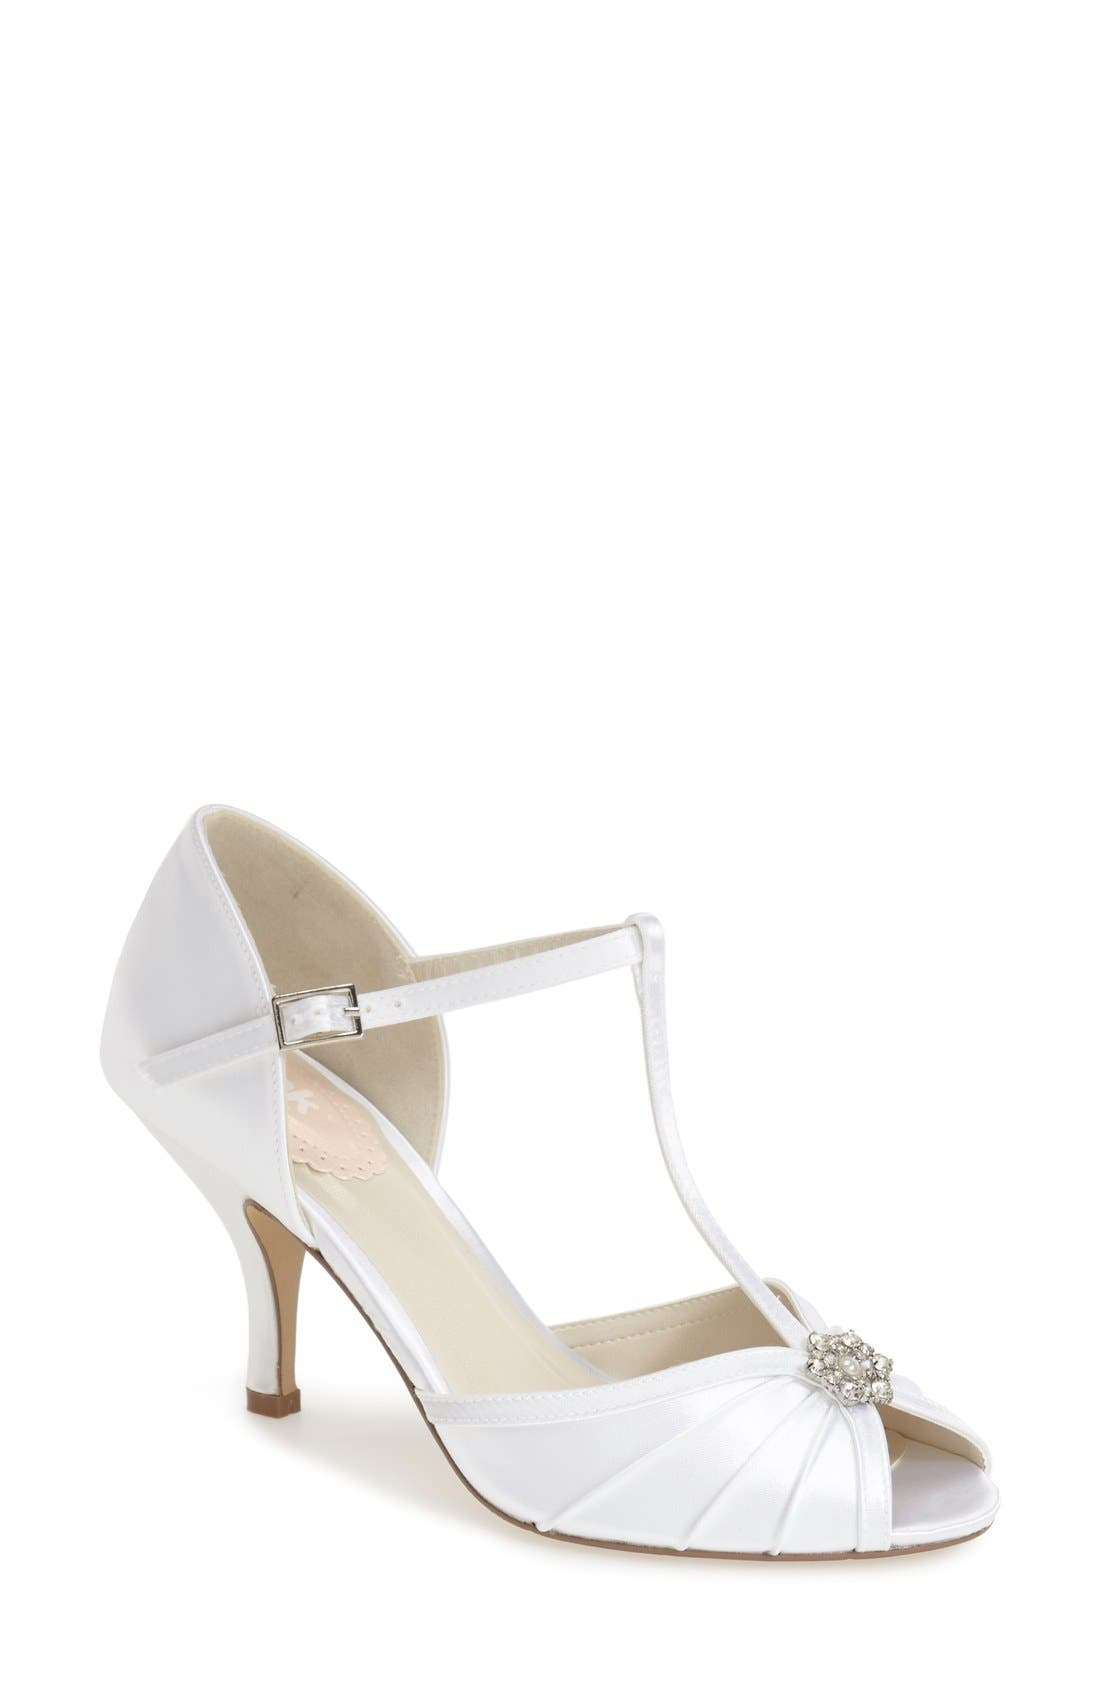 'Perfume' T-Strap Peep Toe Pump,                         Main,                         color, WHITE SATIN